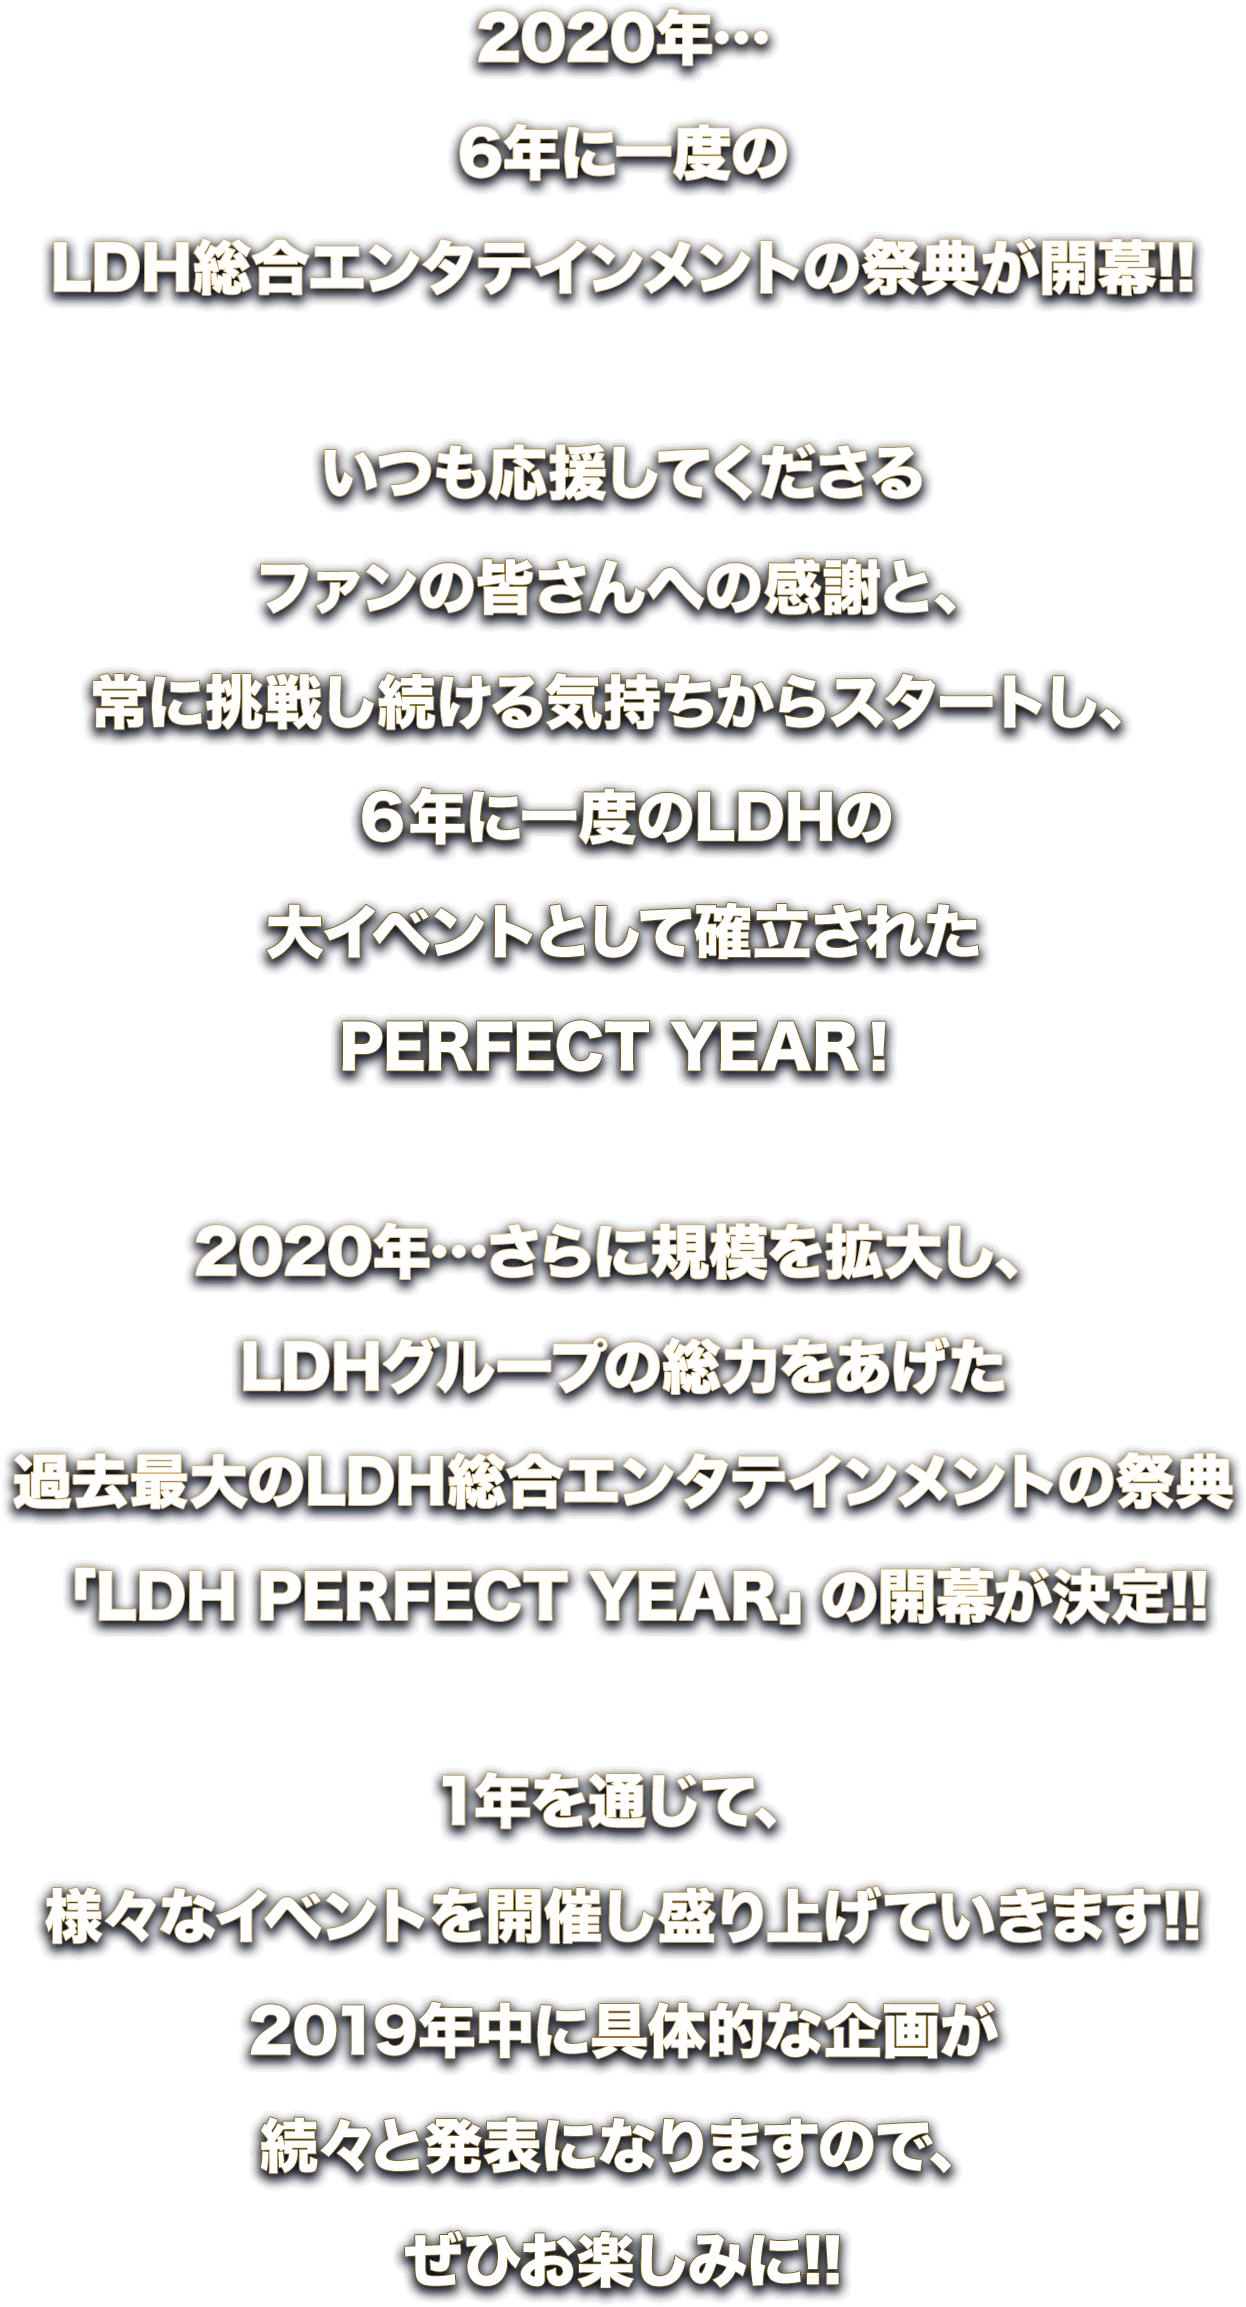 LDH PERFECT YEAR 2020 開催決定!!